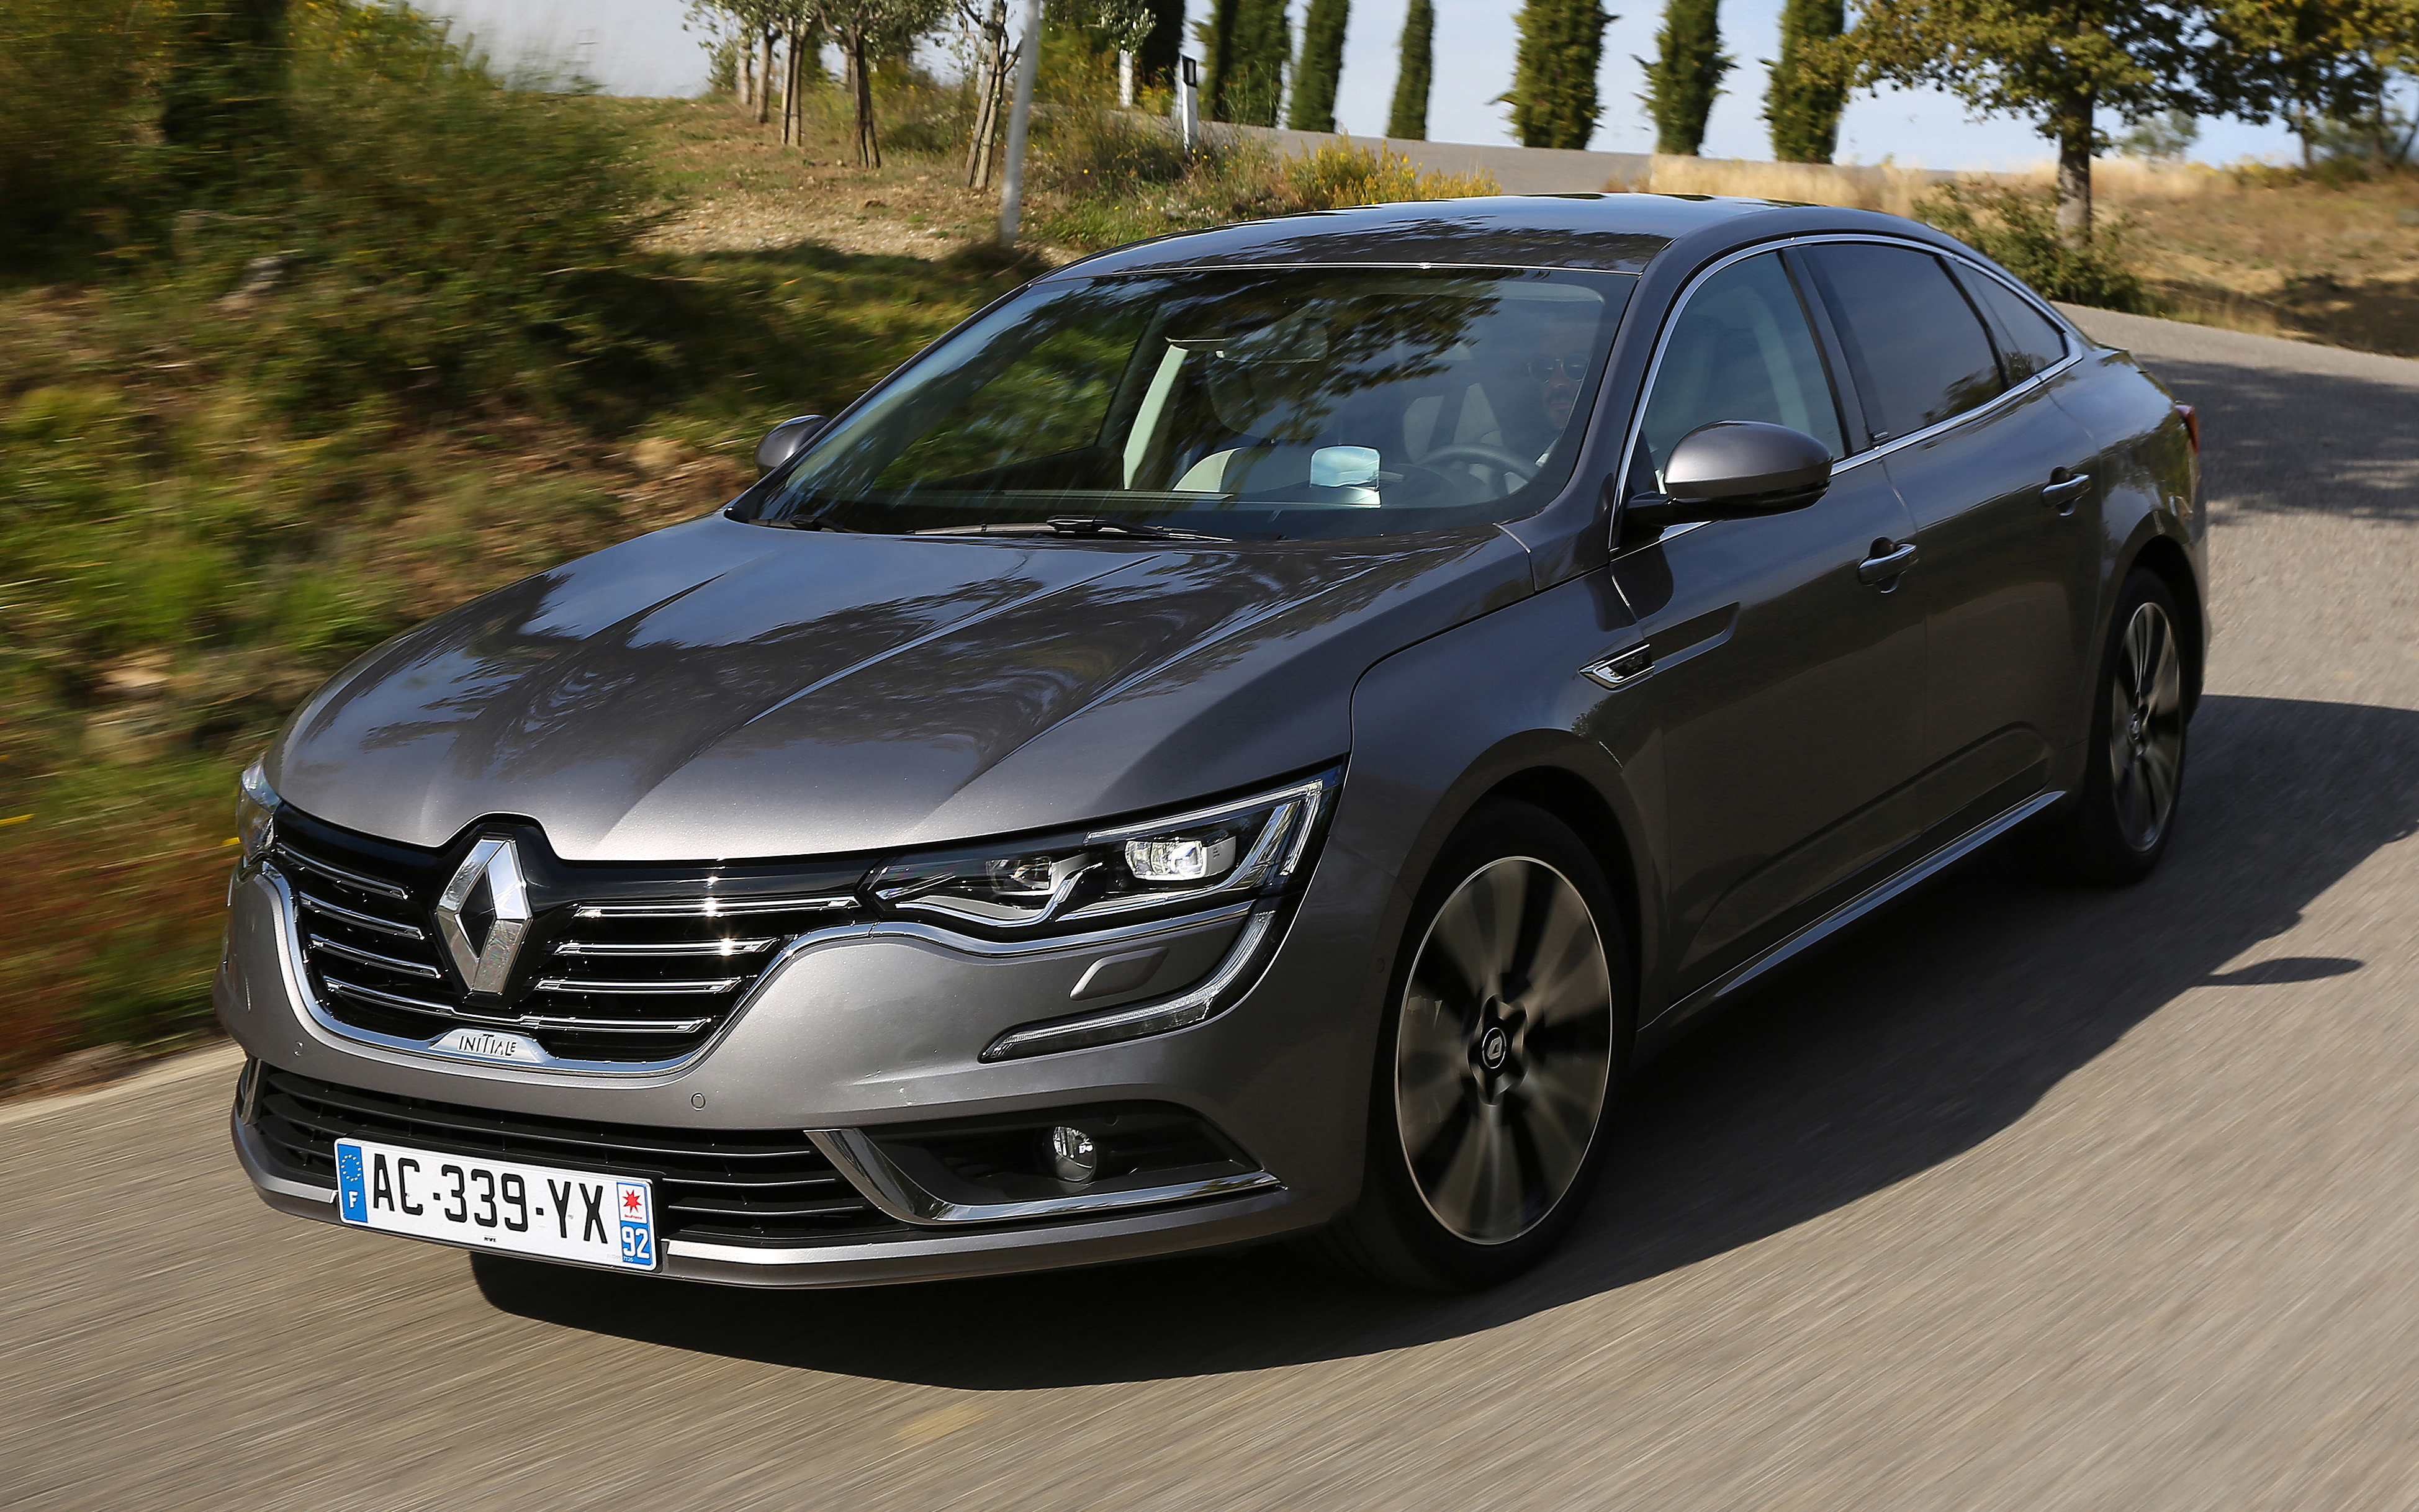 renault talisman tce 200 testdrive topgear nederland. Black Bedroom Furniture Sets. Home Design Ideas